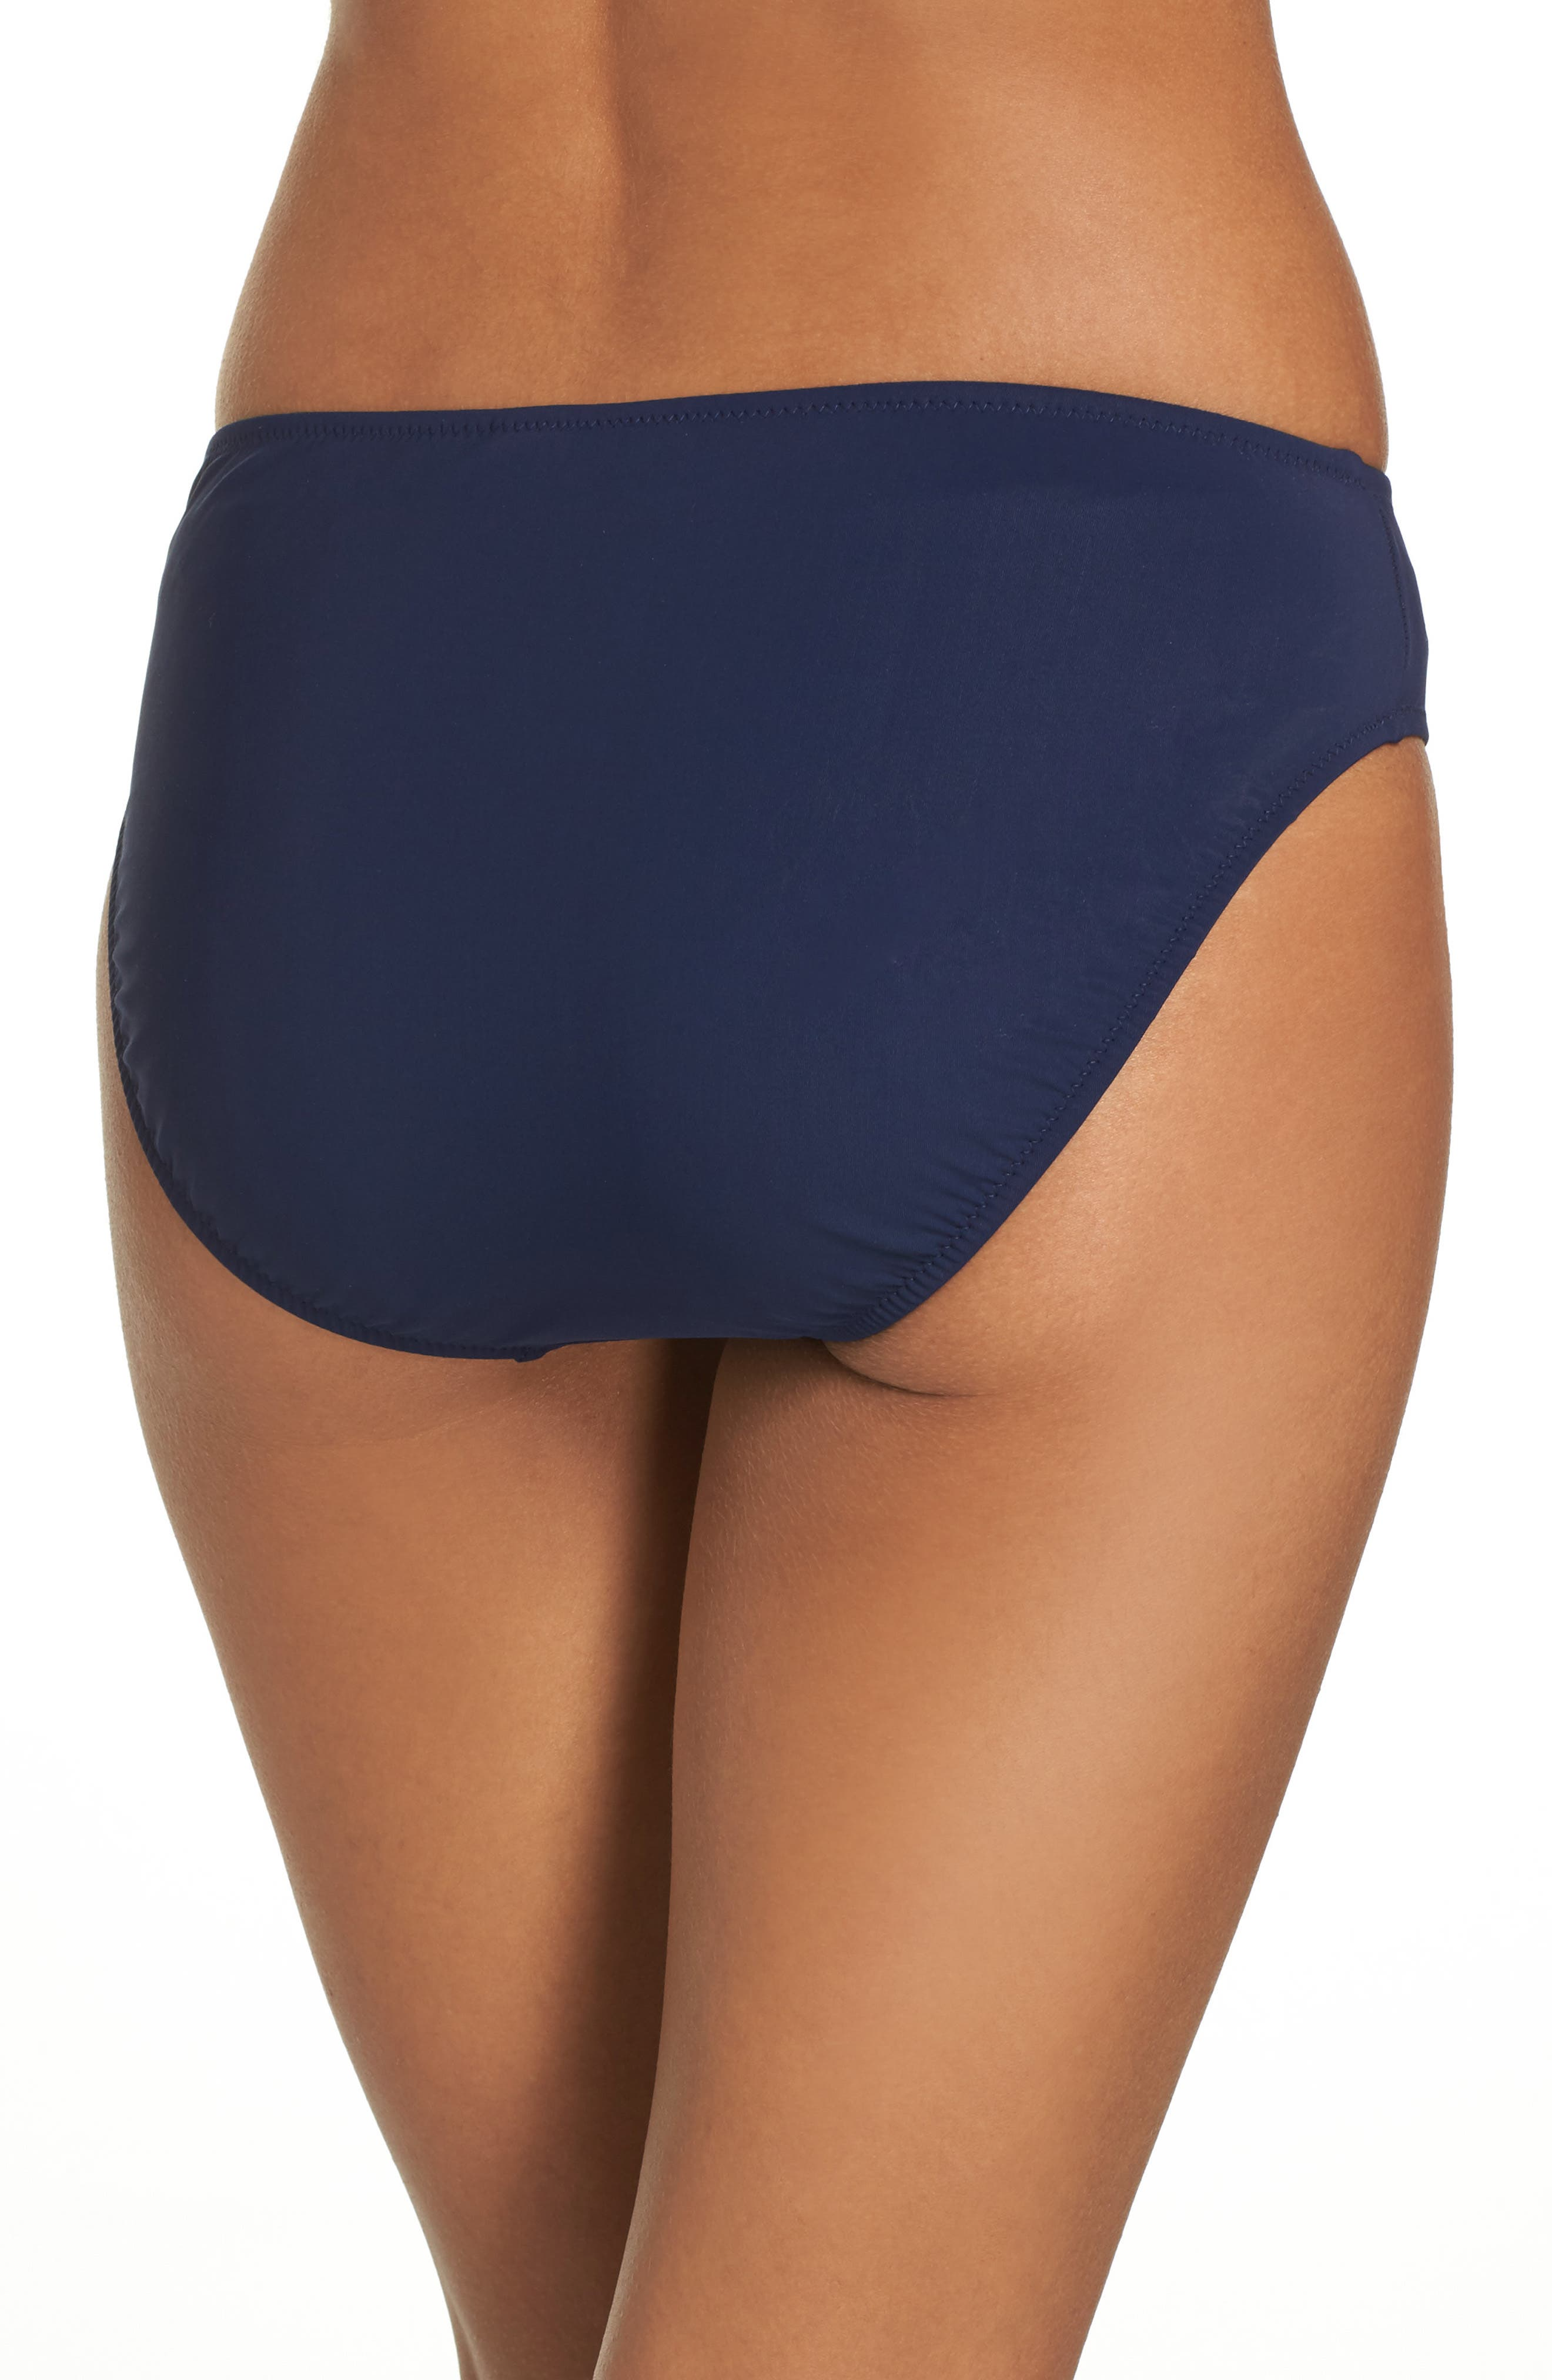 Alternate Image 3  - Profile by Gottex Hipster Bikini Bottoms